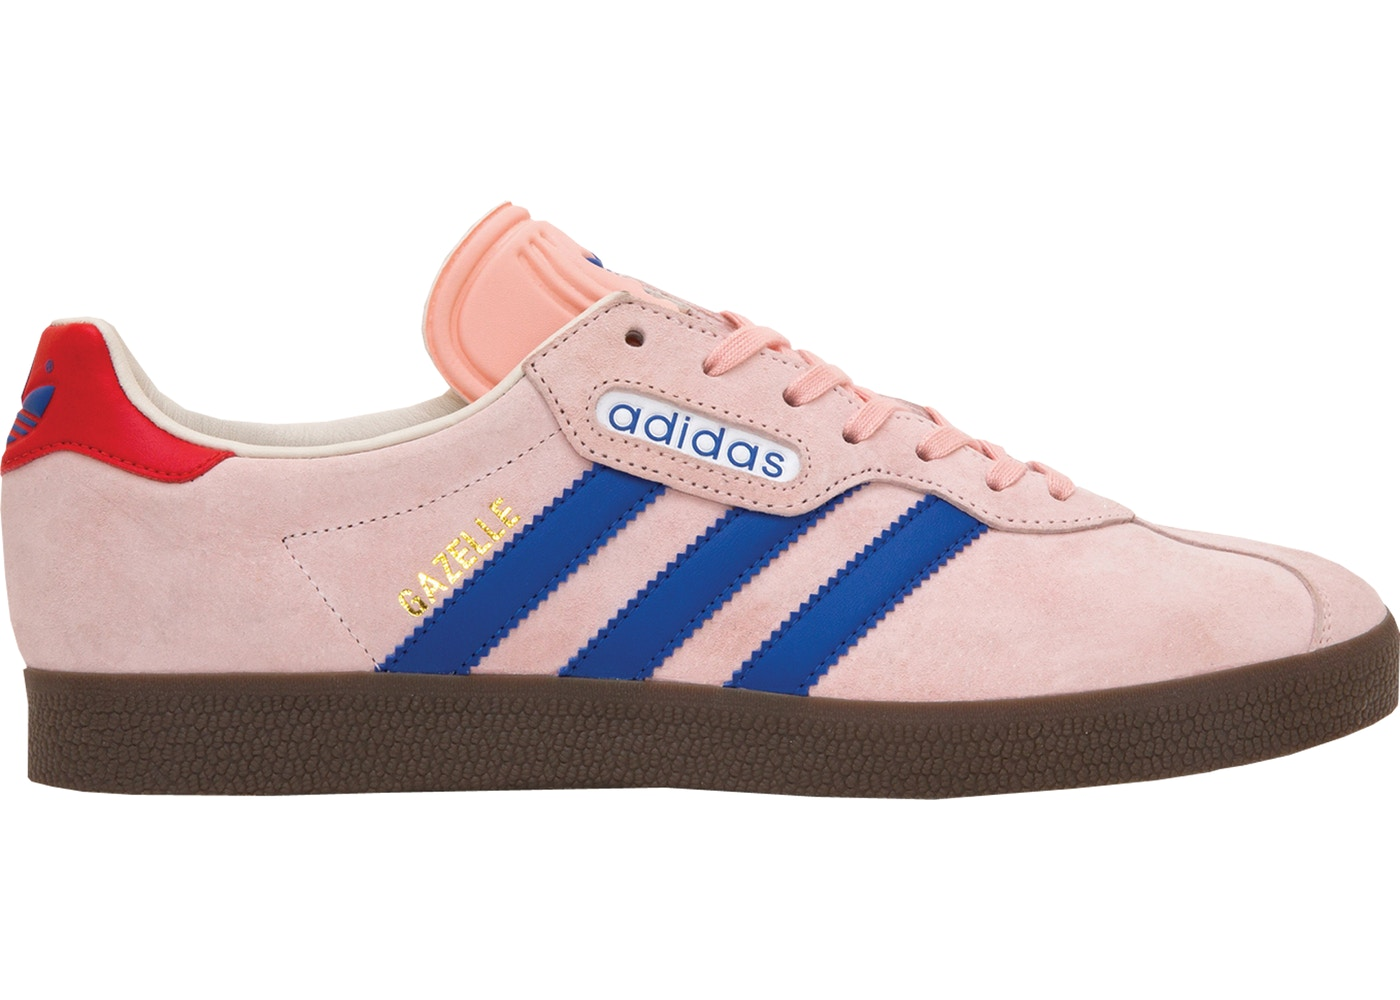 Sneakers – Mens Adidas London to Manchester Gazelle Super Pink